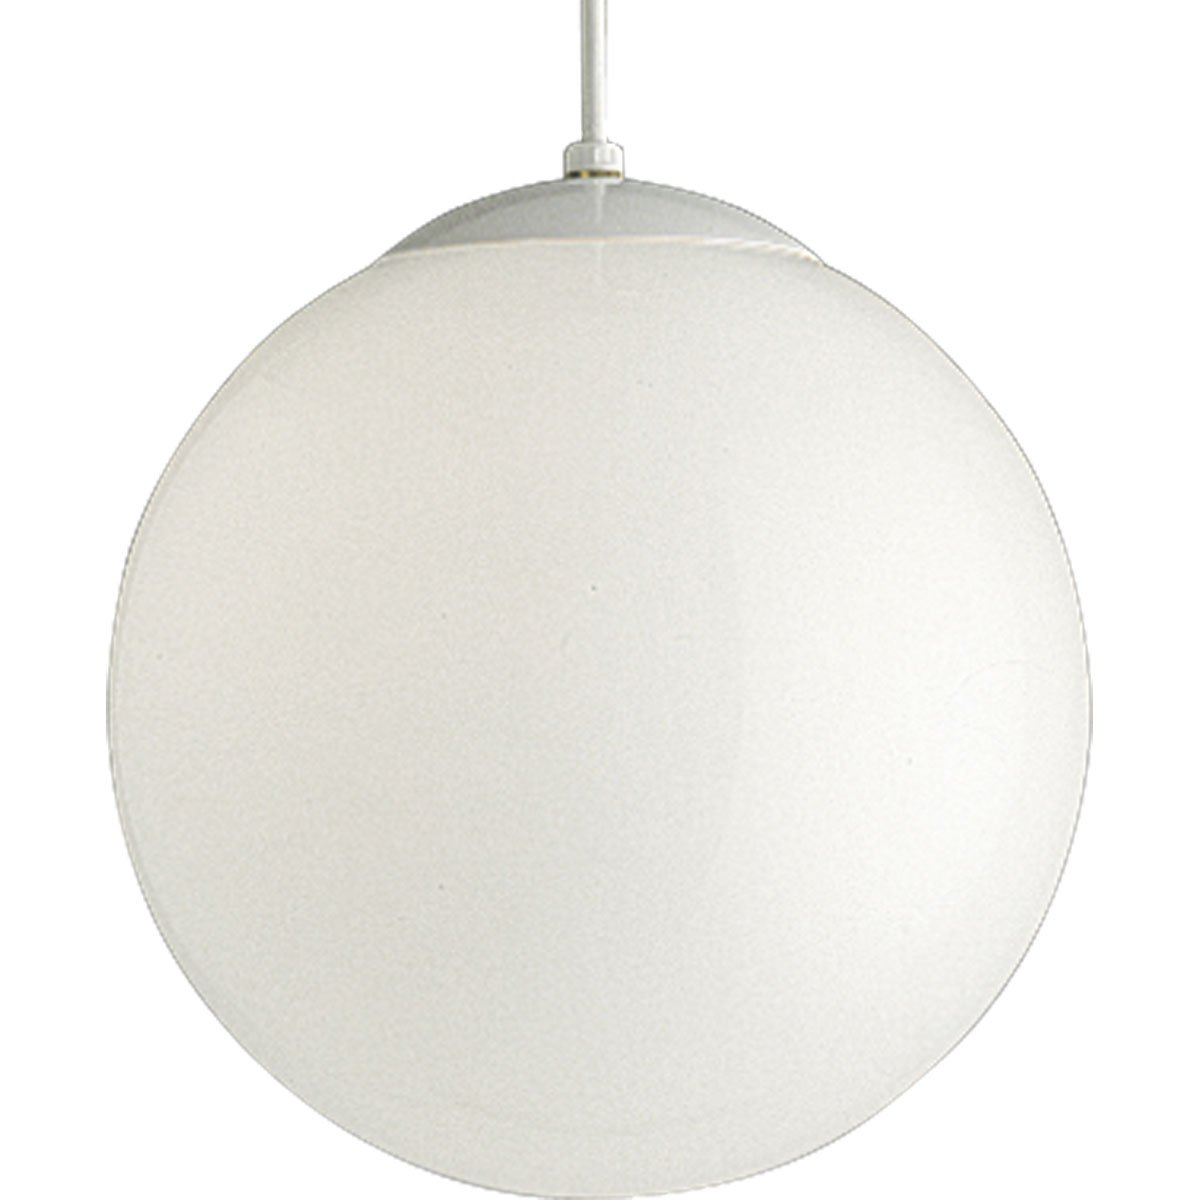 Progress Lighting P4403-29 Opal Cased Globes Provide Evenly Diffused Illumination White Cord, Canopy and Cap, Satin White by Progress Lighting